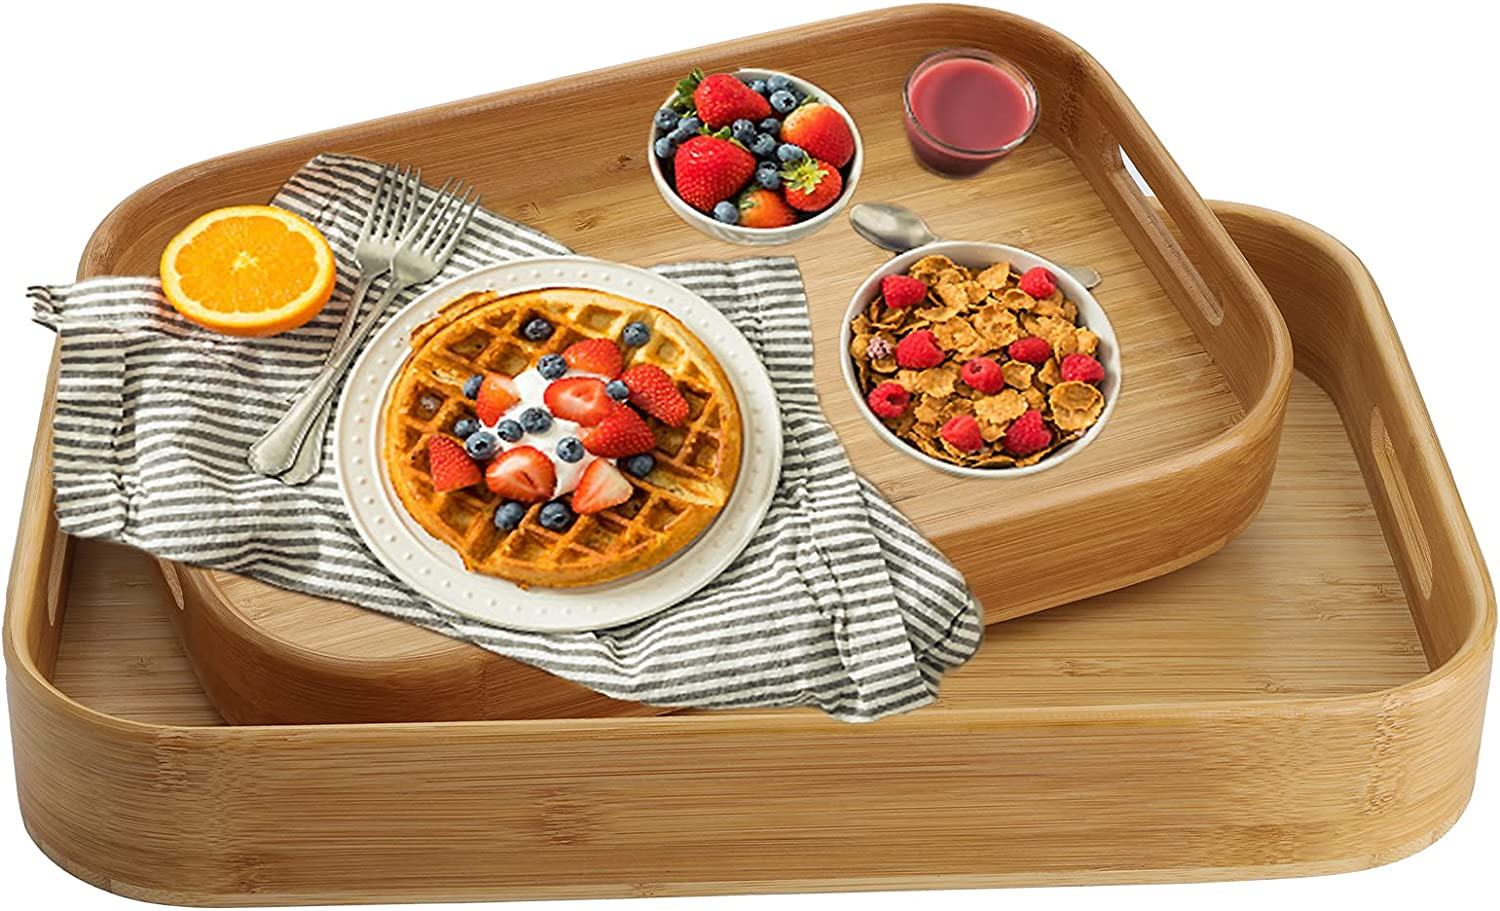 Dicunoy Set of 2 Bamboo Serving Tray, Solid Wood Breakfast Tray with Handles, Large Bamboo Food Tray Great for Dinner, Tea, Coffee, Bar, Parties, 15.6